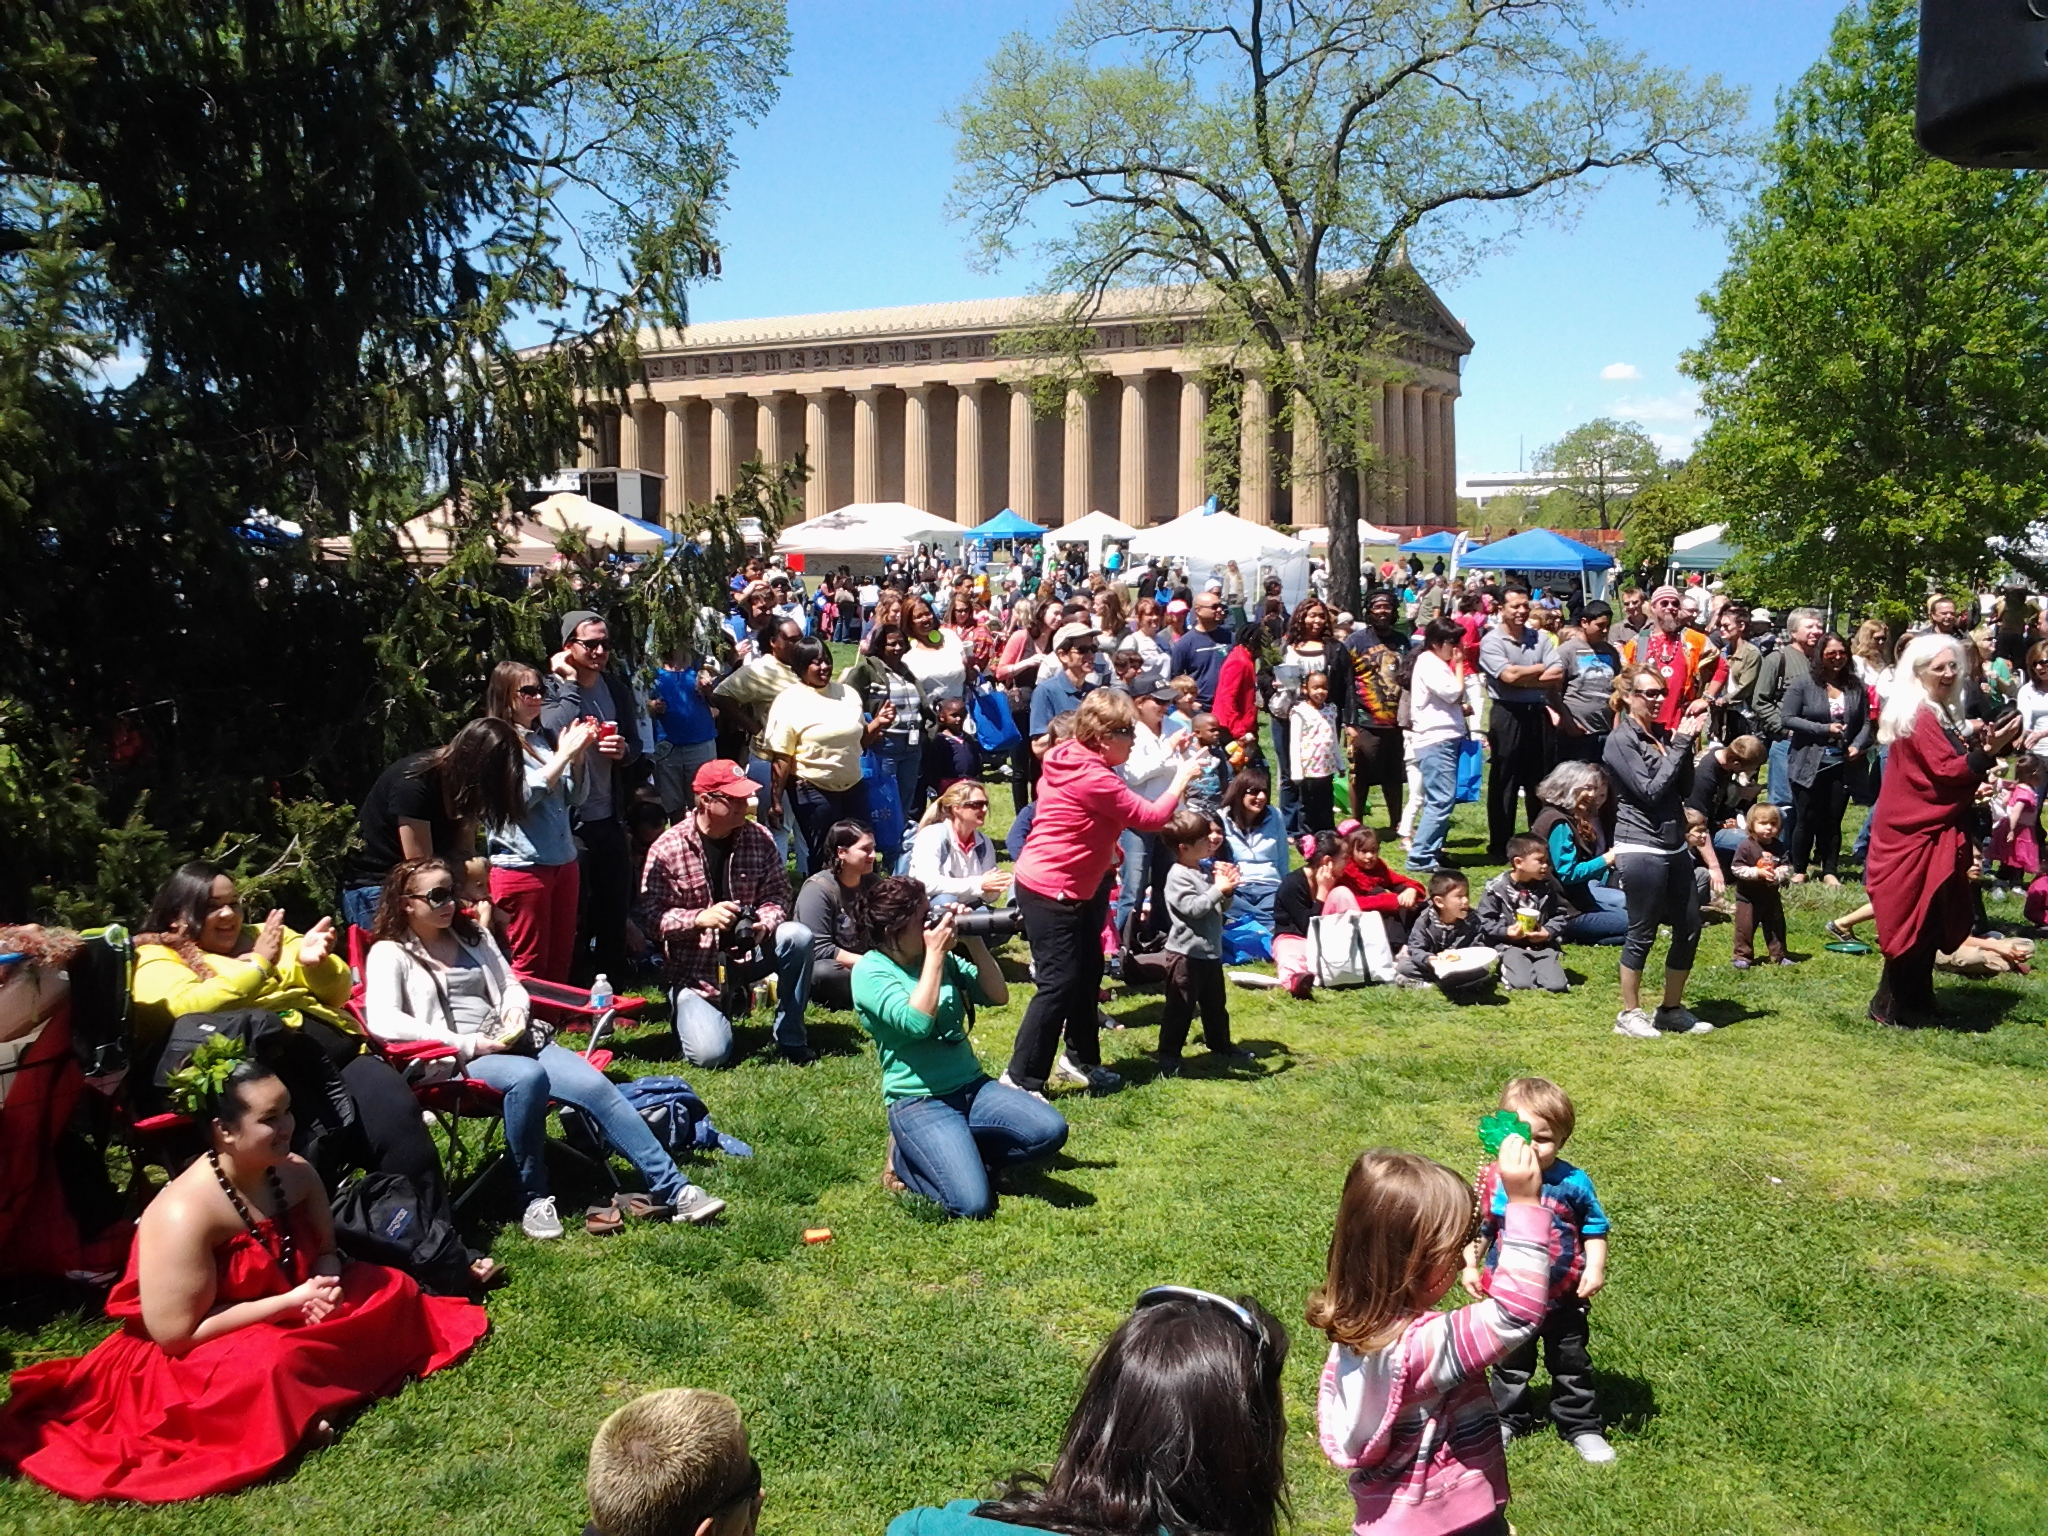 Nashville: Earth Day Festival 2019 | Tncleanfuels in Centennial Park Nashville Events